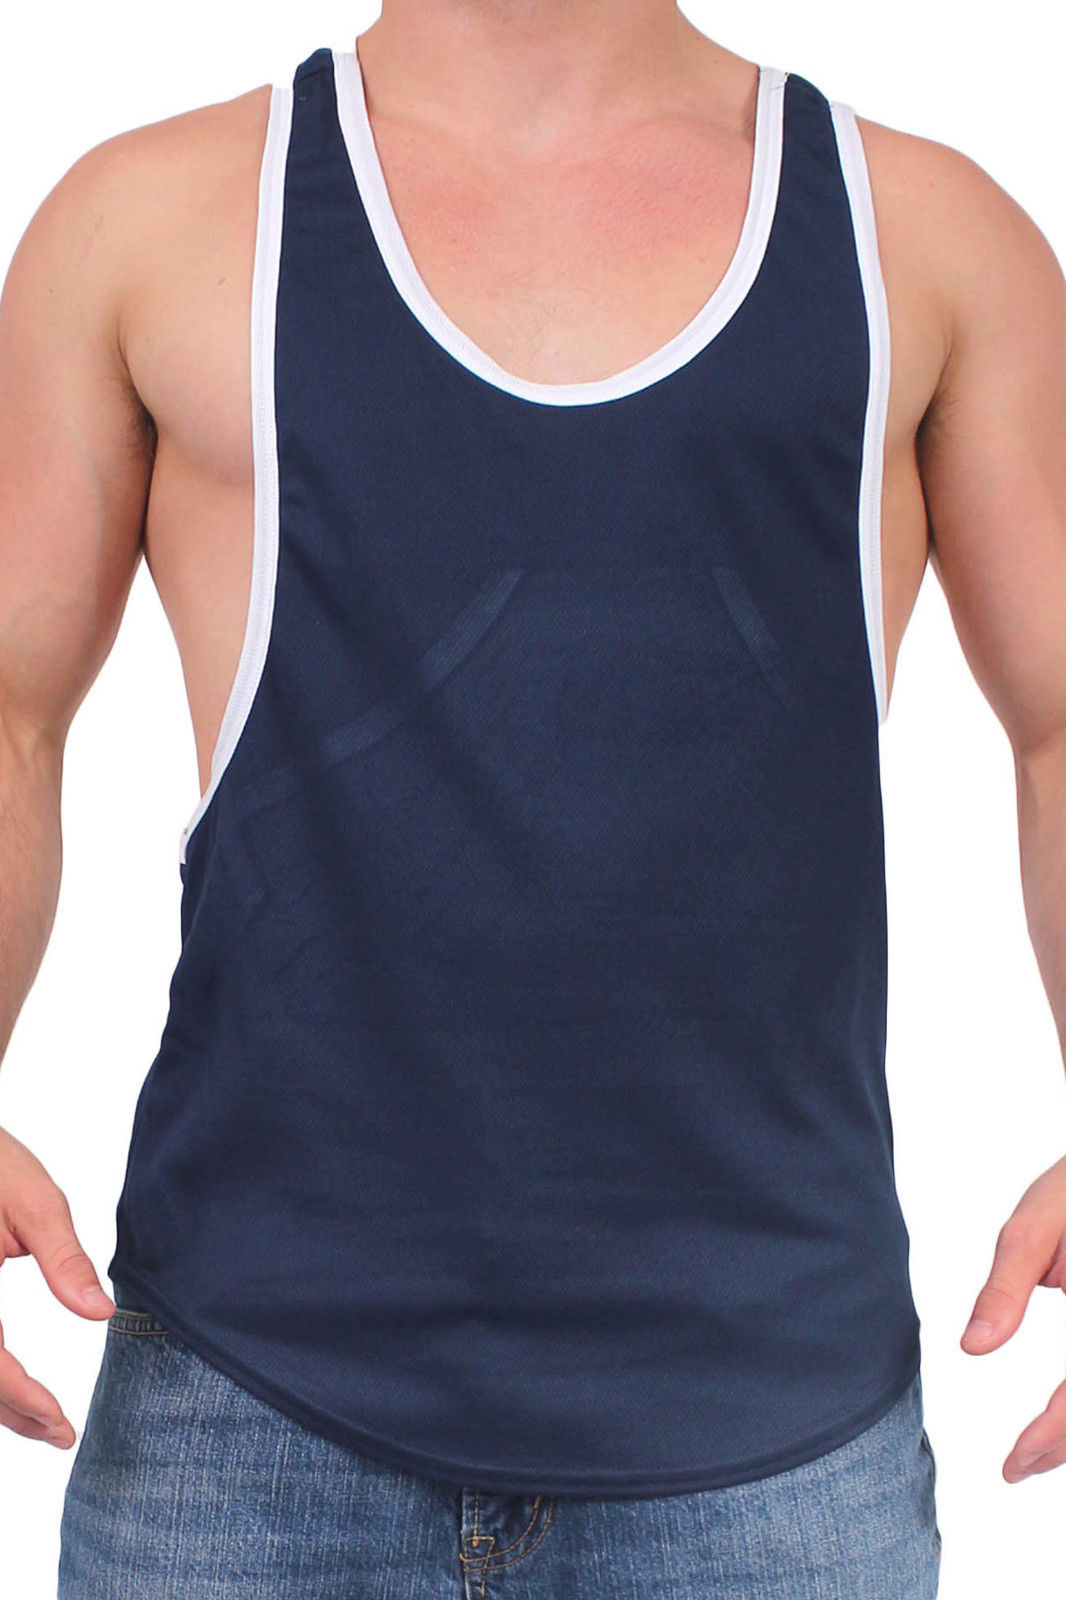 314b7392cd464e MEN S DRI FIT OPEN SIDE RACERBACK BLACK TANK TOP GYM WORKOUT RIB RINGER  SHIRT